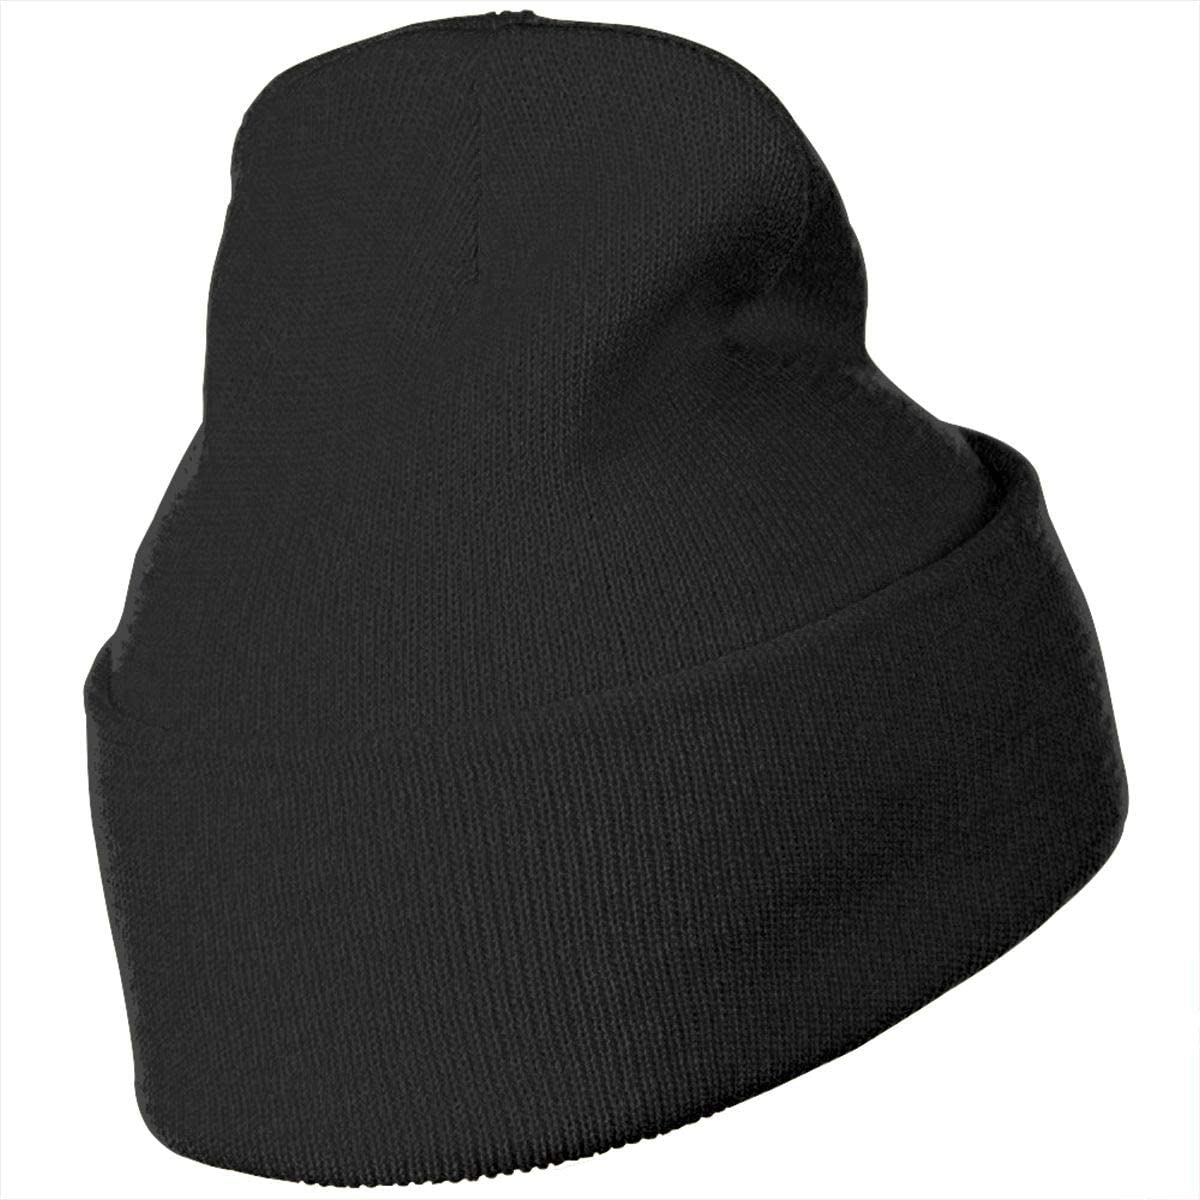 JimHappy Emblem of Thailand Hat for Men and Women Winter Warm Hats Knit Slouchy Thick Skull Cap